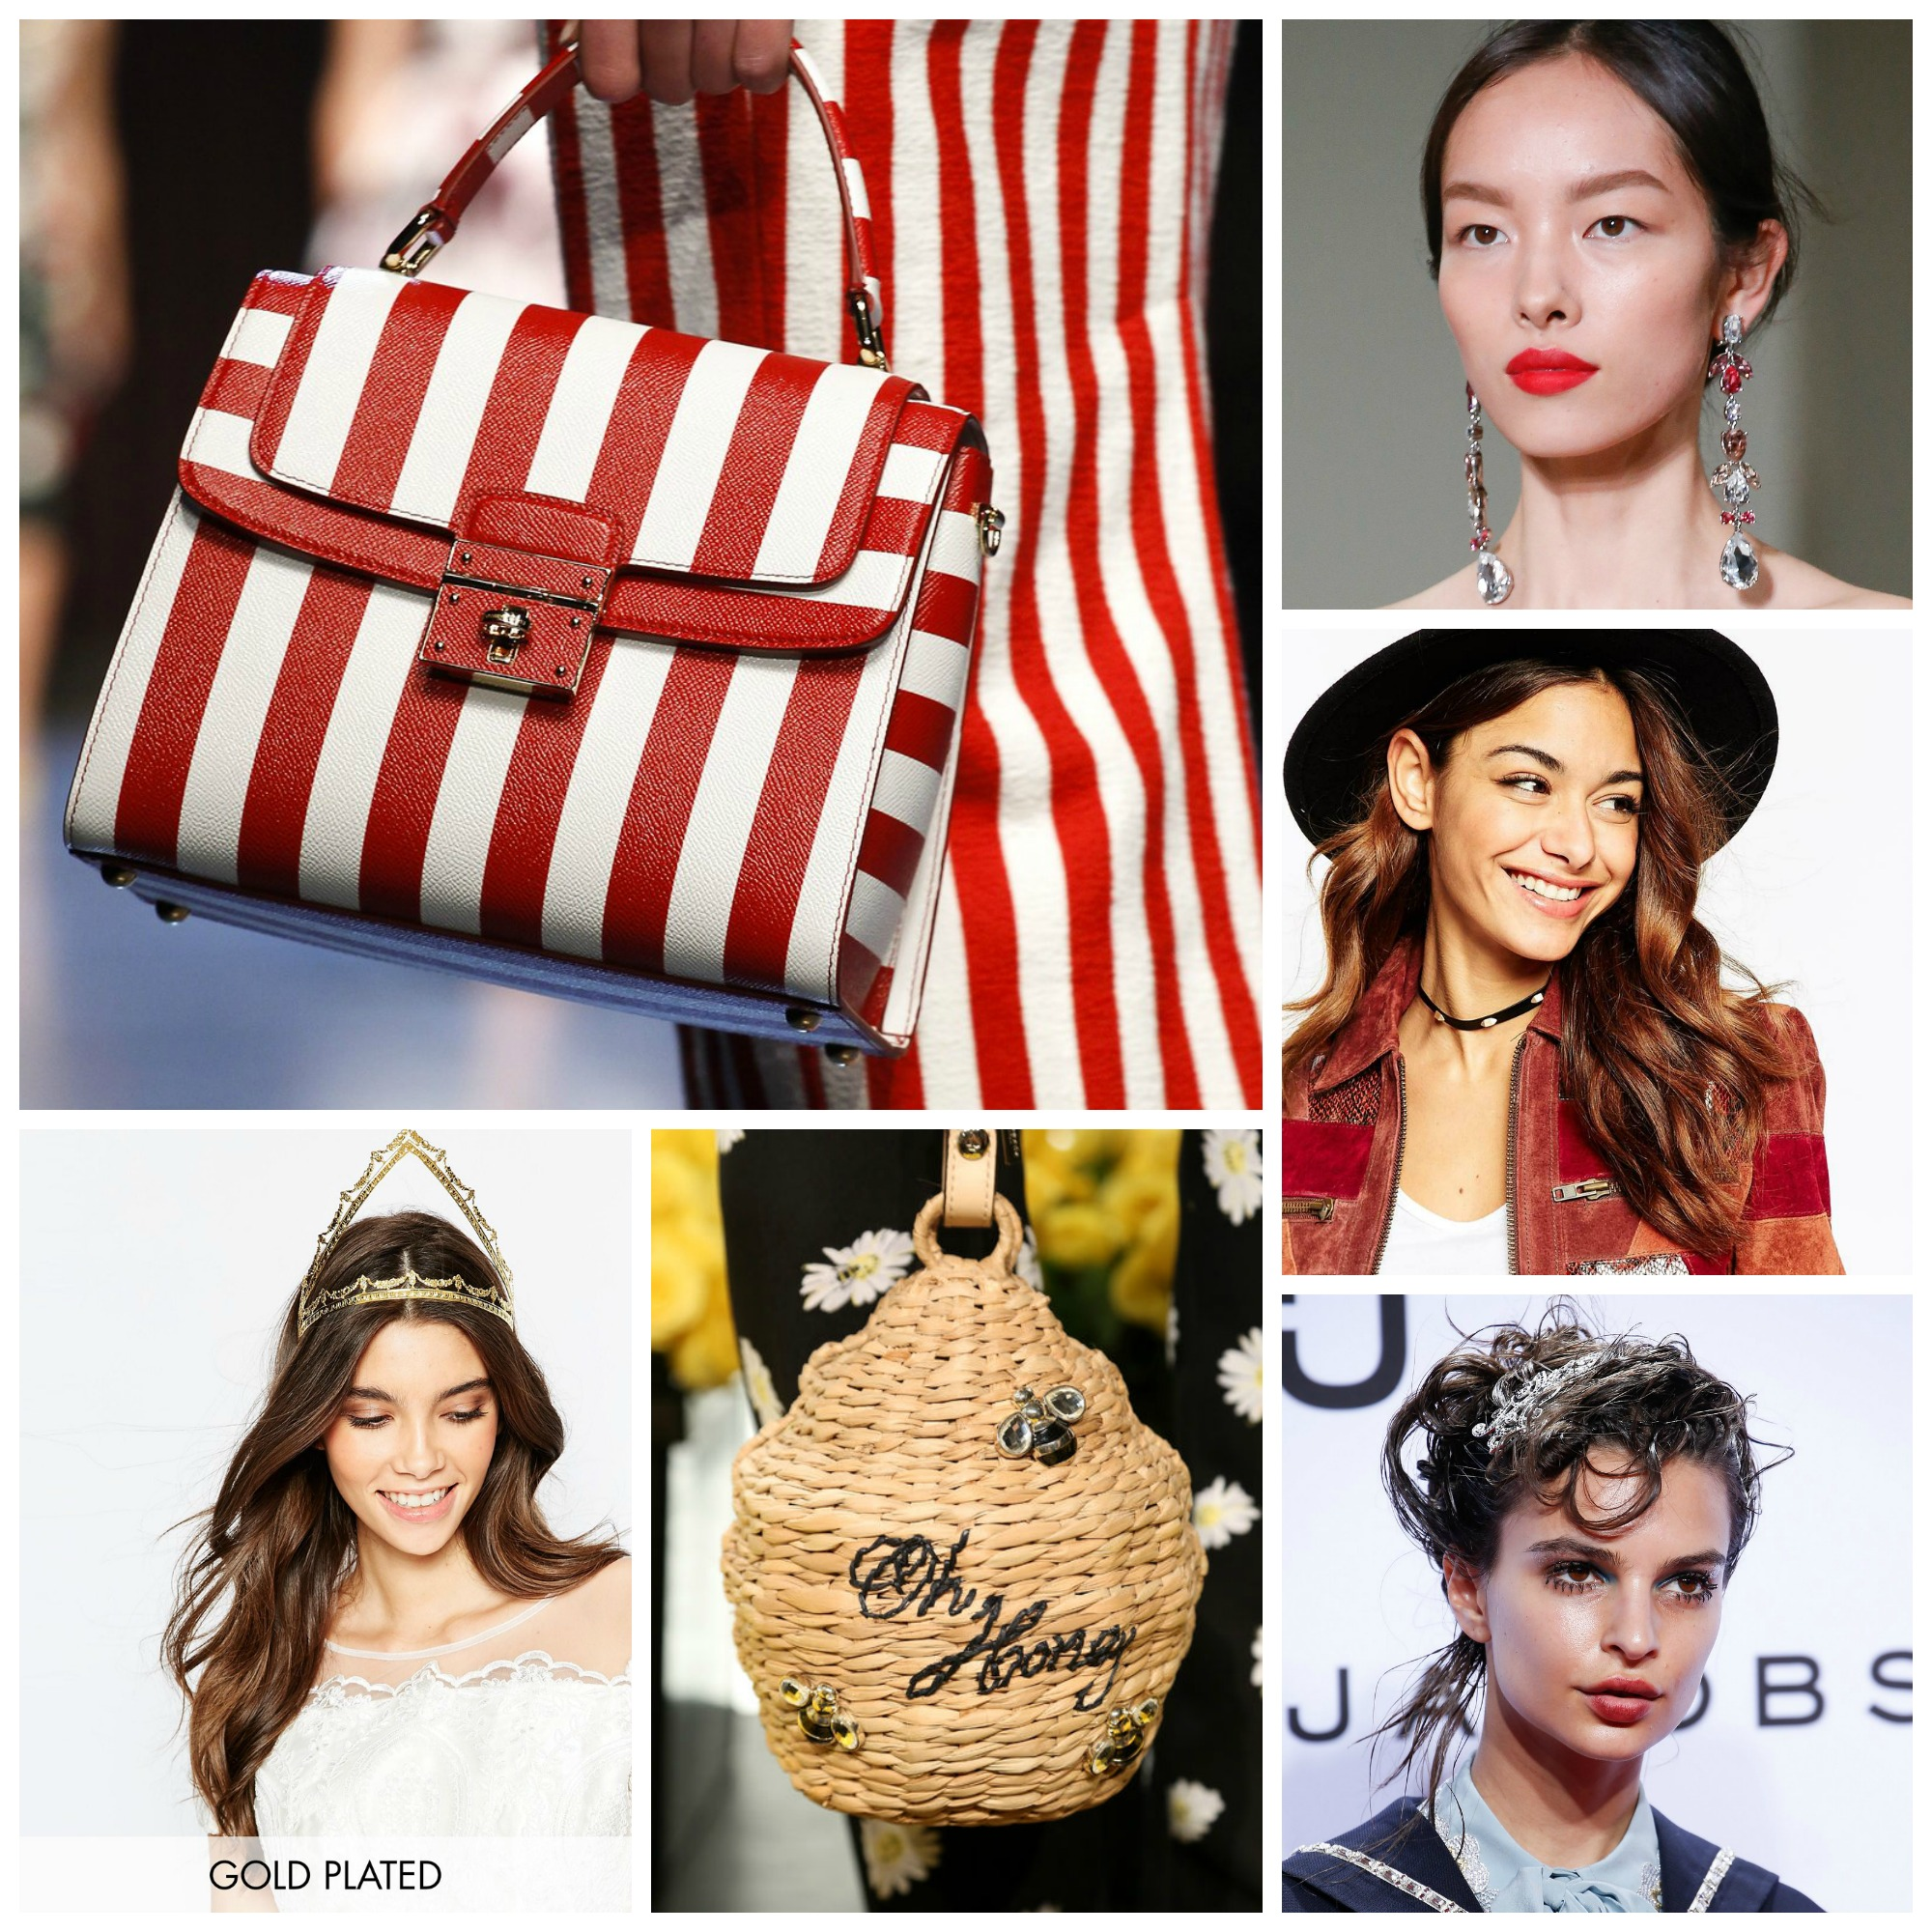 accessories-accessory-trend-forcast-bags-jewels-hair-crowns-wicker-basket-statement-earrings-blog-post-gingham-and-sparkle-designer-high-street-choker-prints-stripes-spring-summer-fashion-style